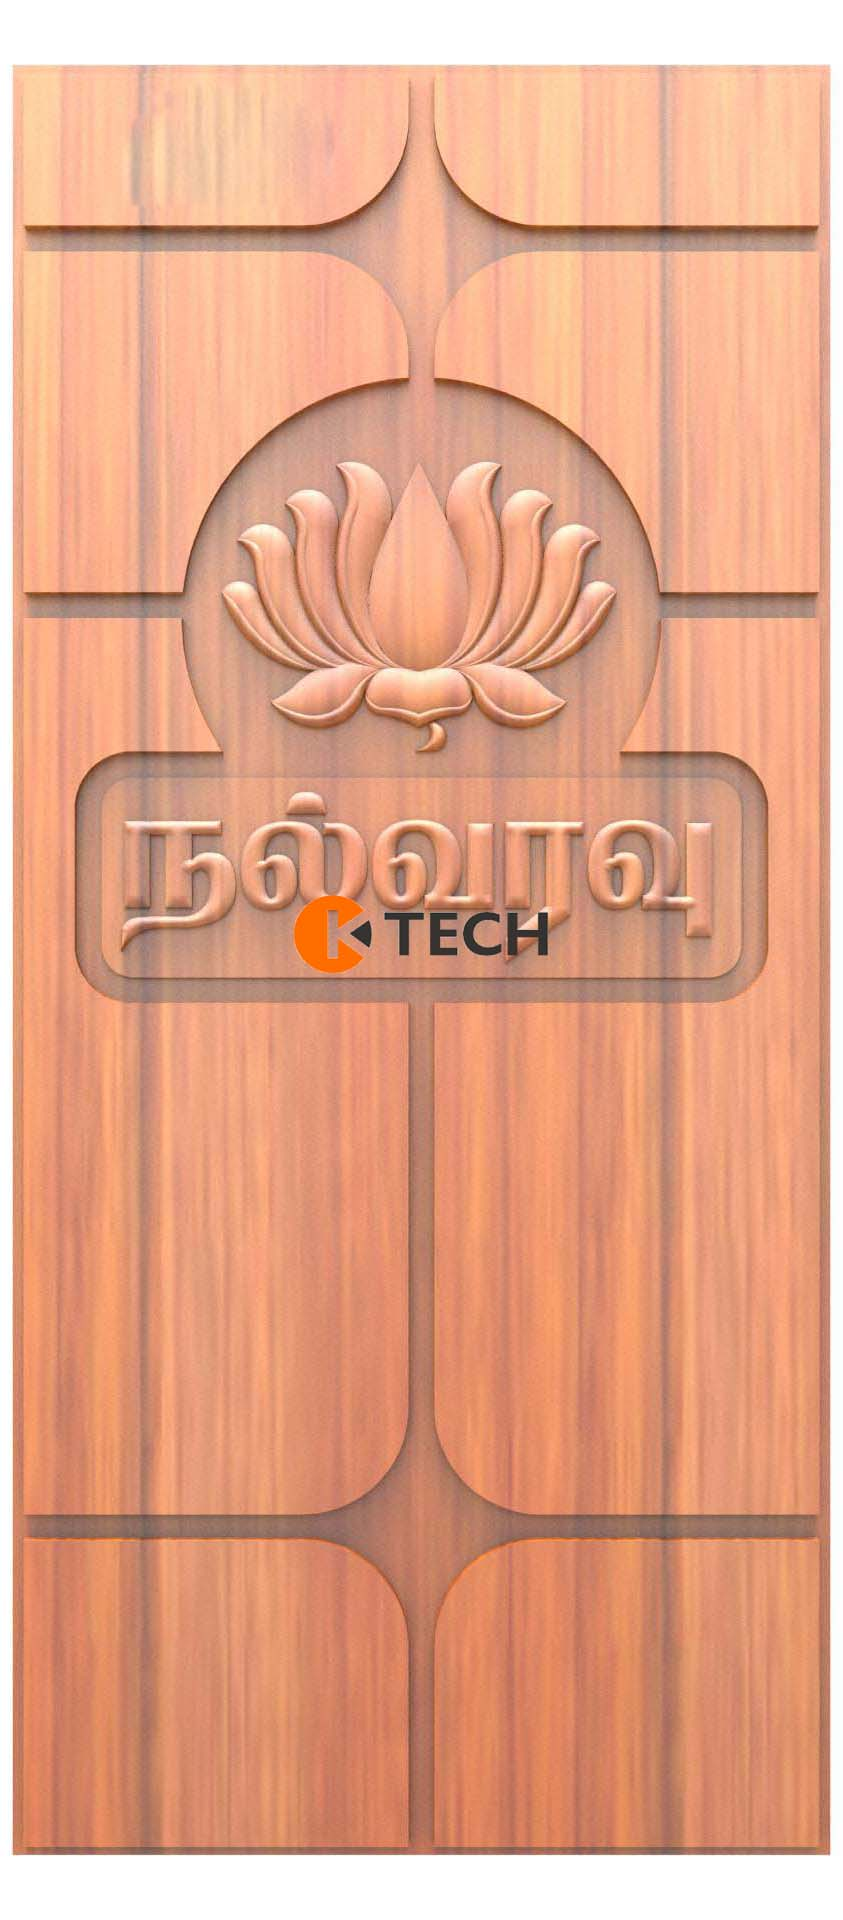 K-TECH CNC Doors Design 164